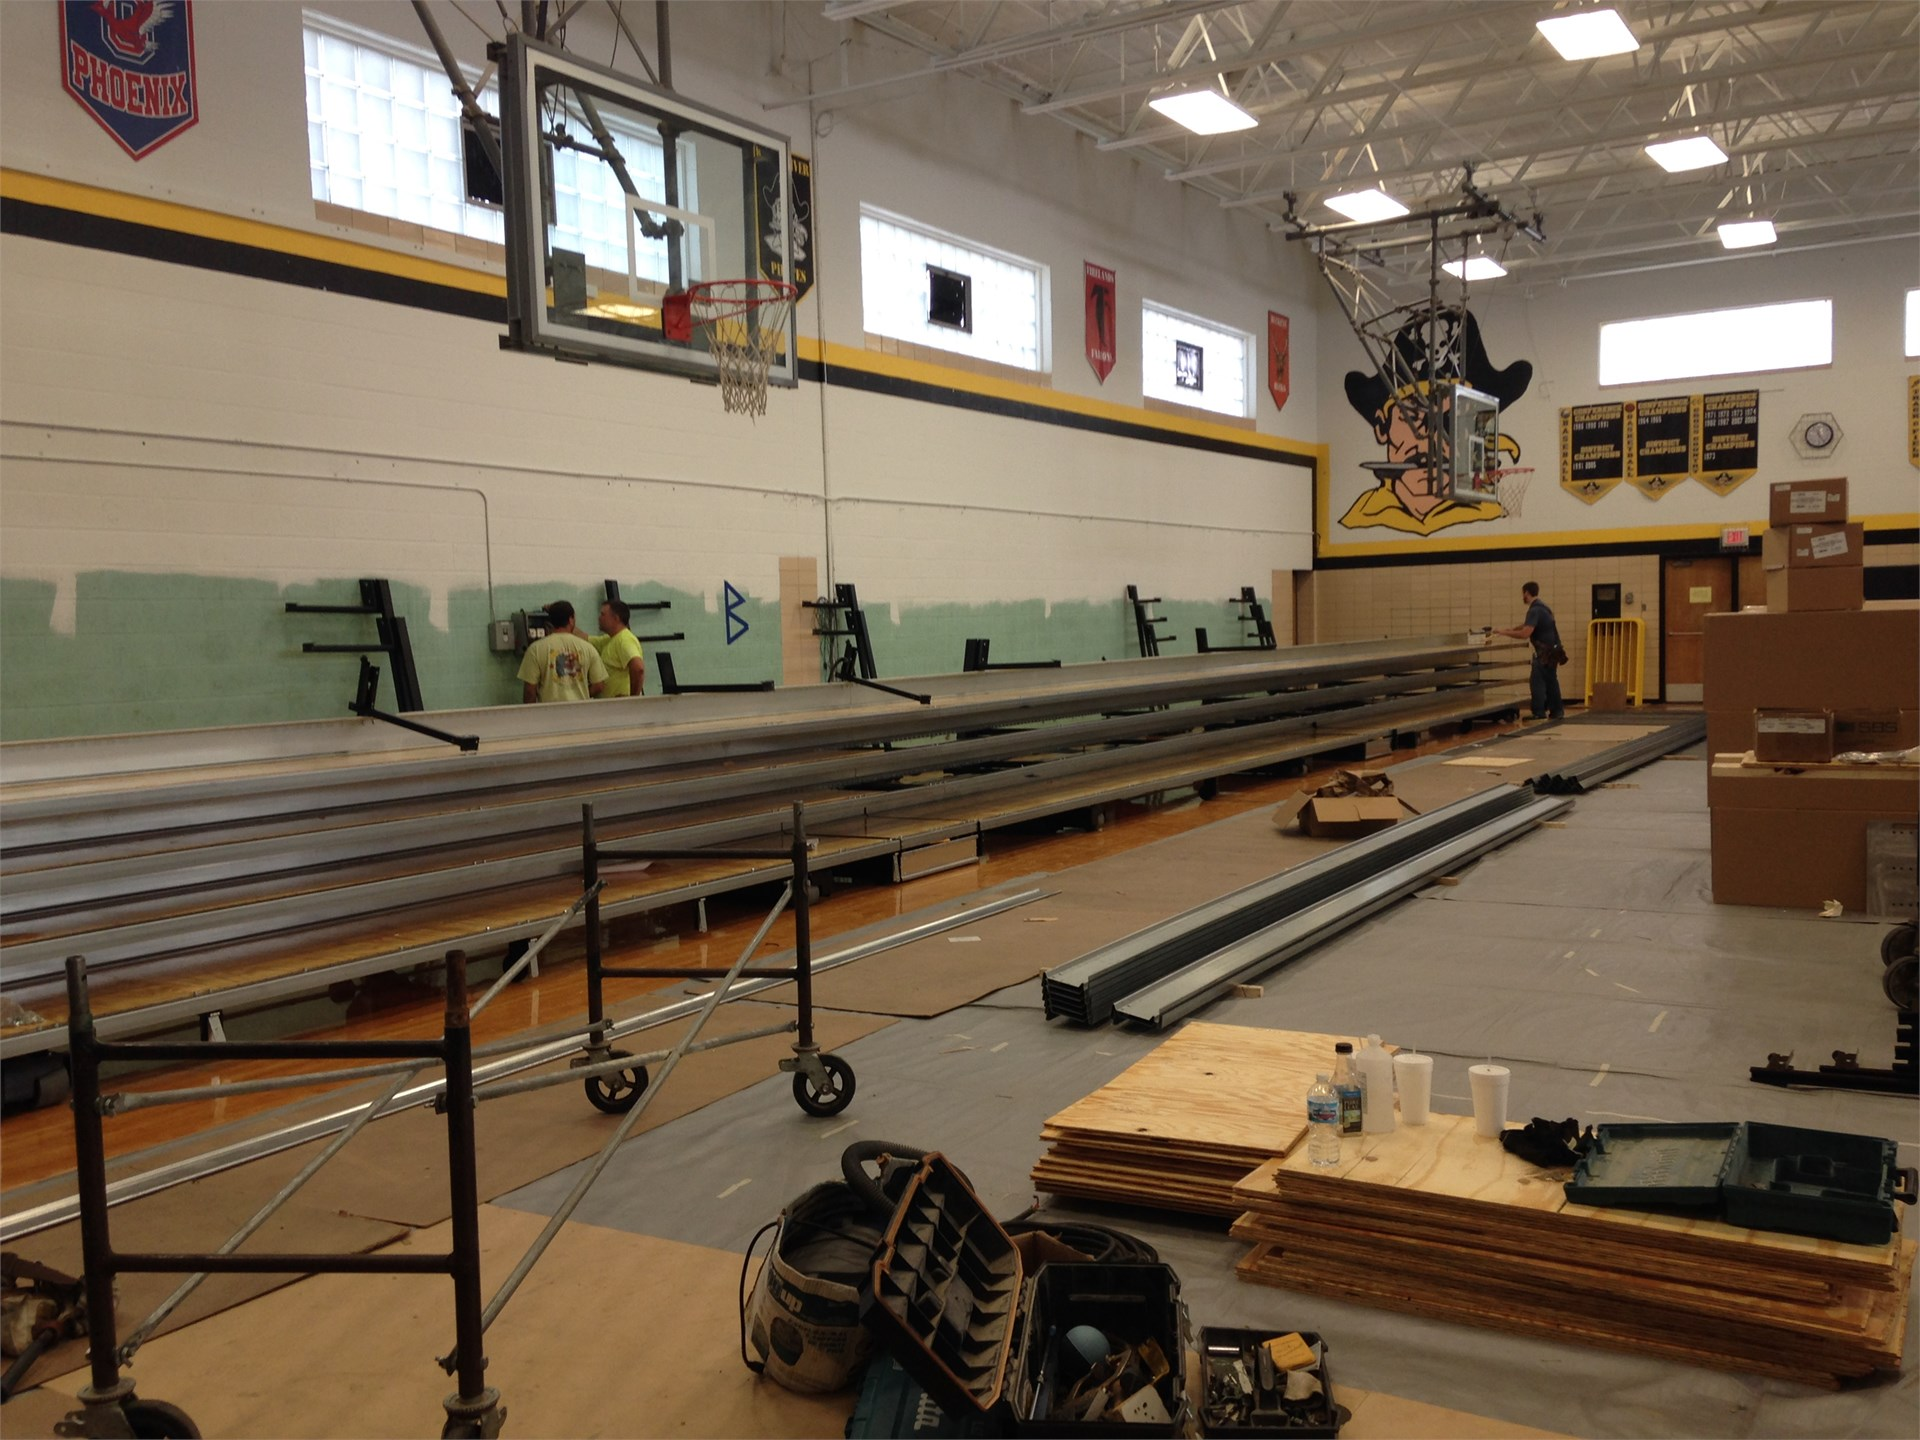 Assembly of visitor bleachers